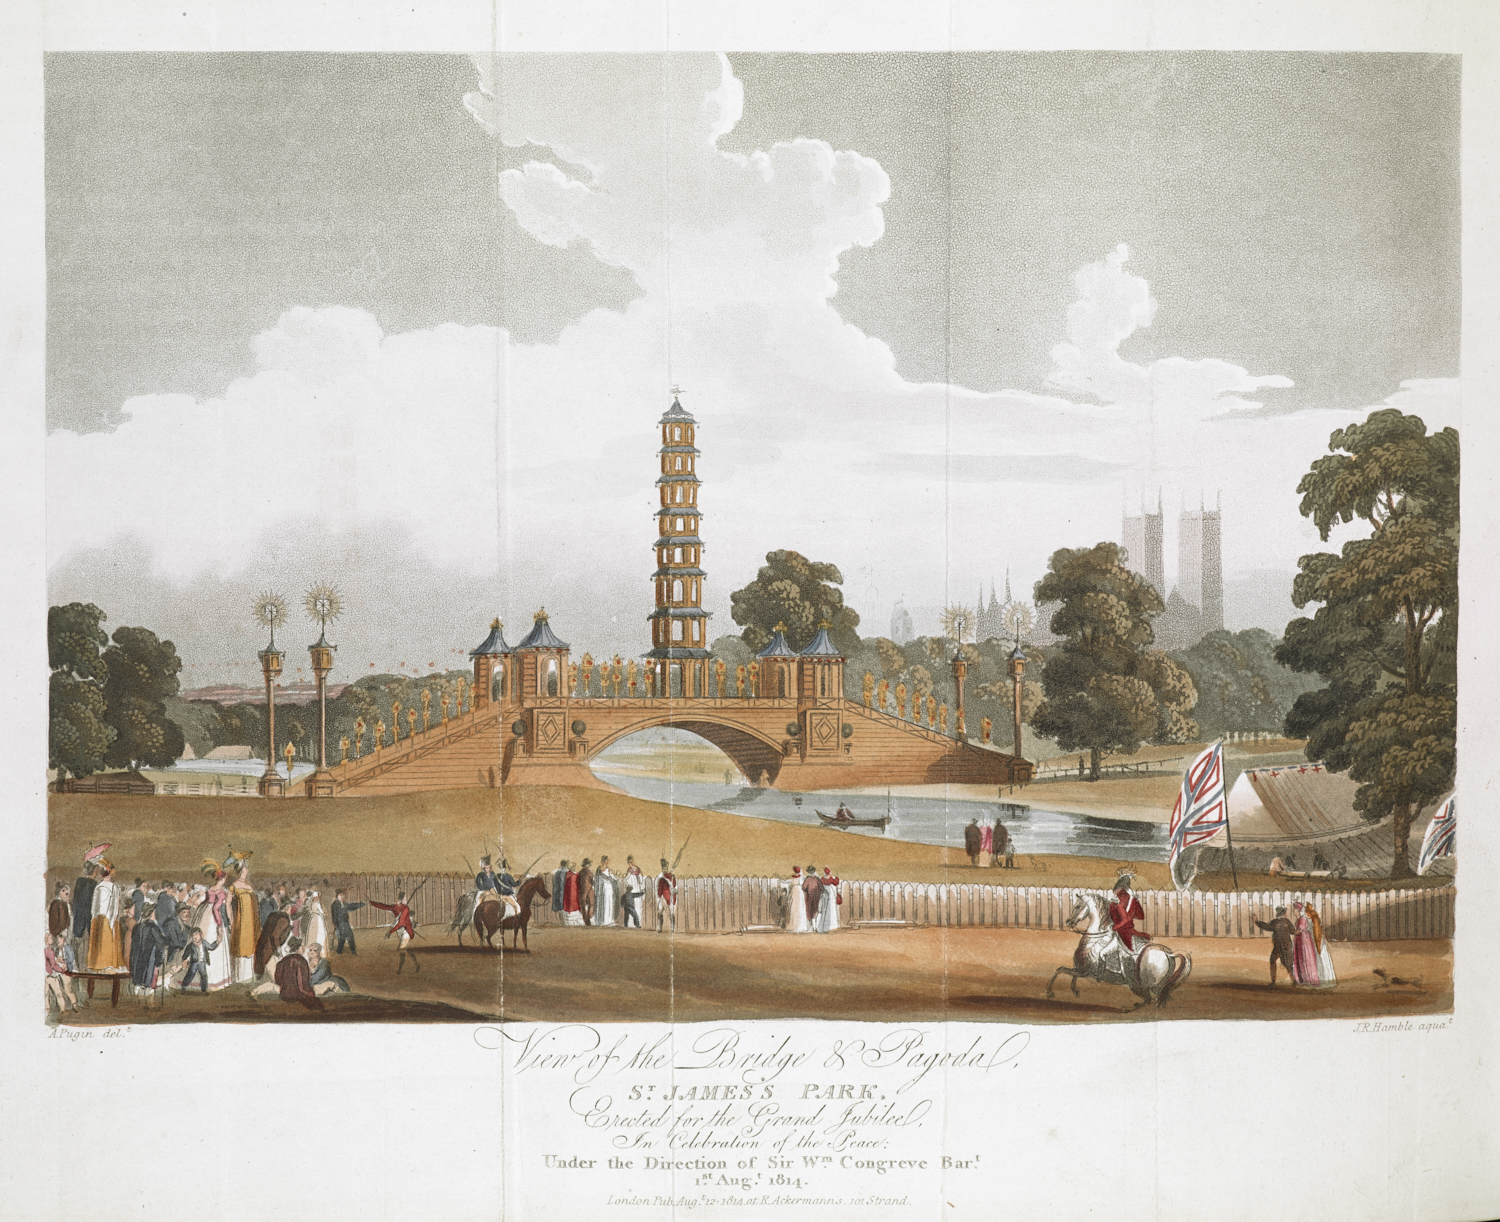 J.R. Hamble, after Augustus Charles Pugin, View of the Bridge & Pagoda, ST. JAMES'S PARK, from Select Views of London, (London: Rudolph Ackermann, 1816), hand-coloured aquatint, platemark 24.7 x 30.0 cm 192.b.19